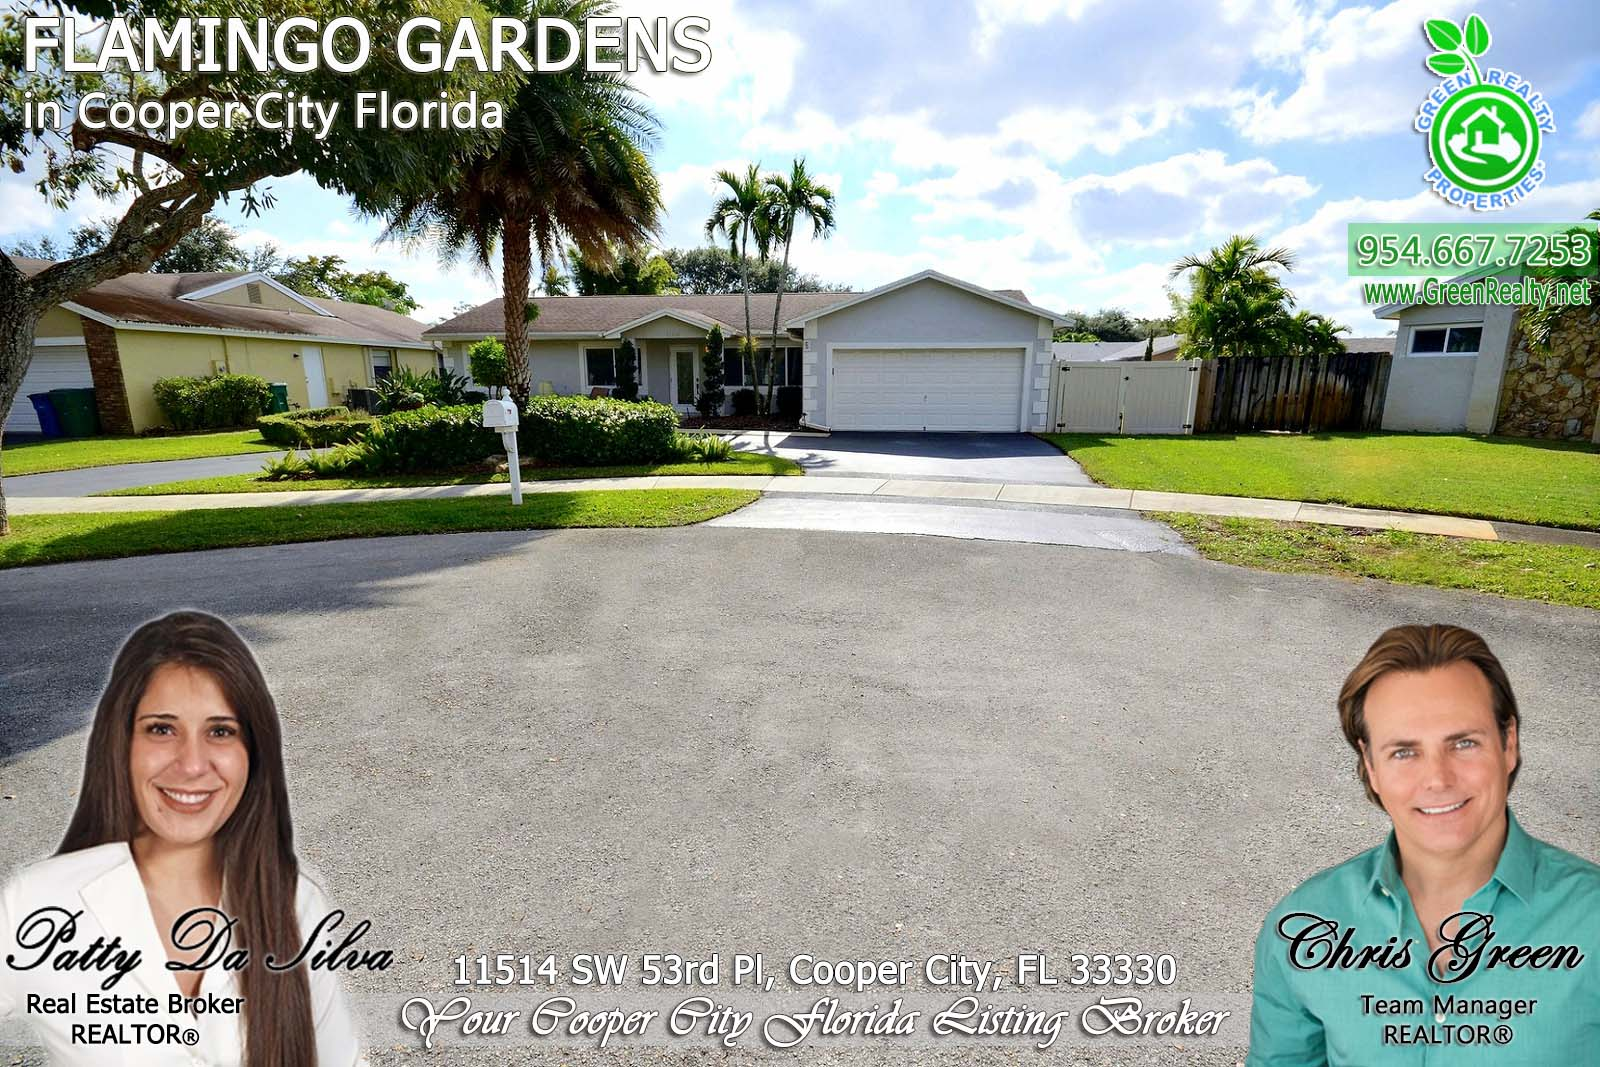 37 Flamingo Gardens Cooper City Homes For Sale (17)